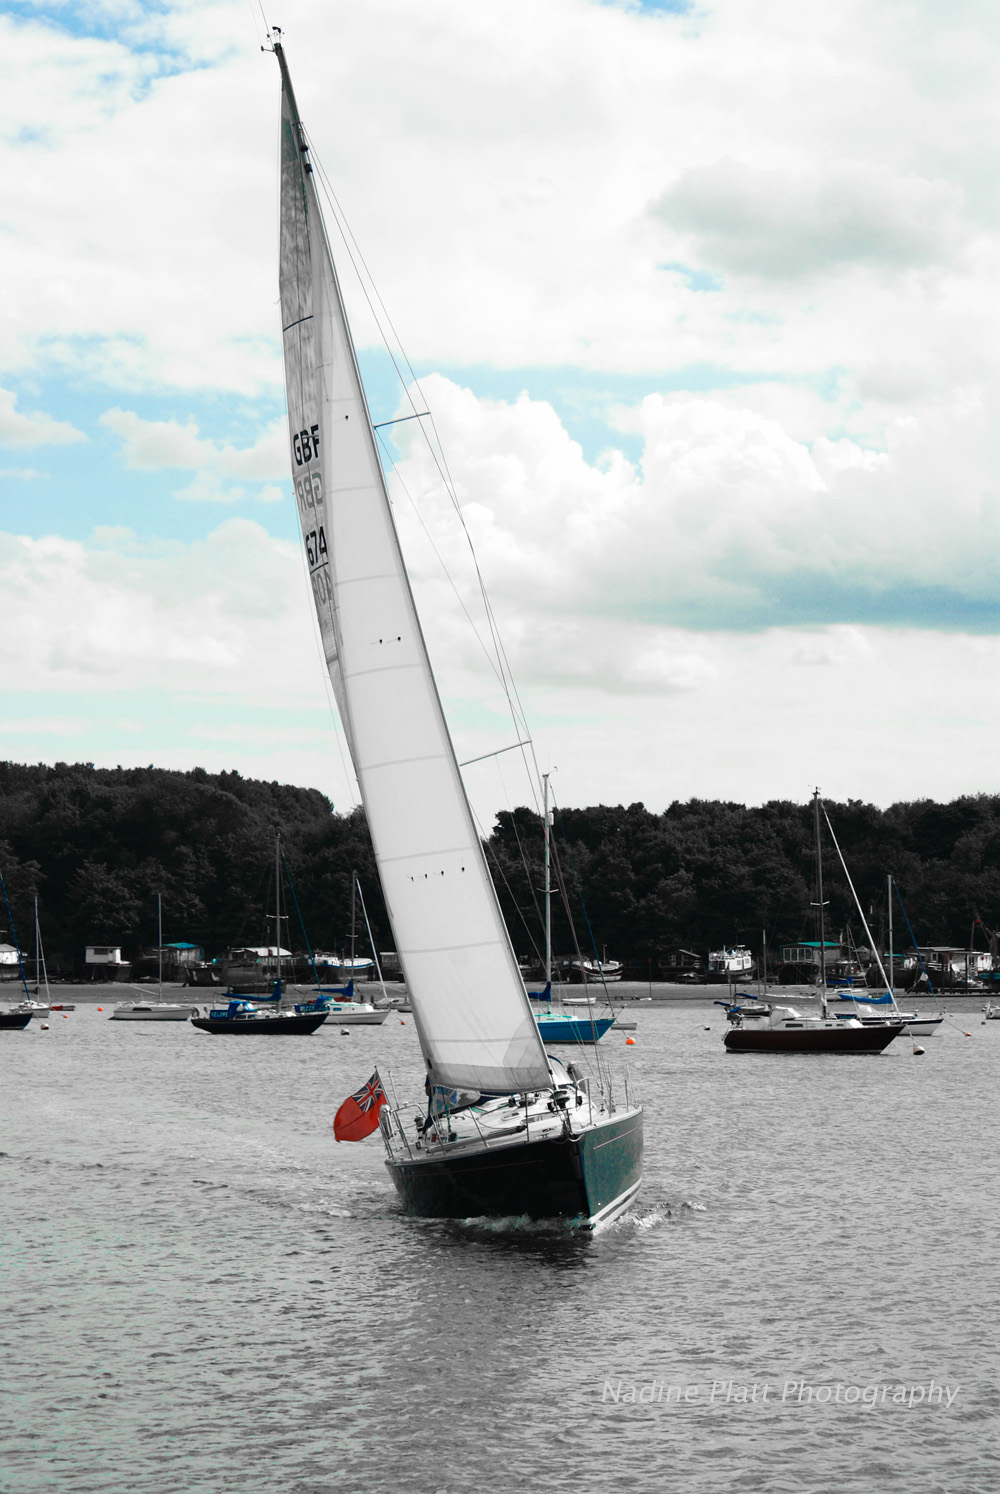 Yacht on the River Orwell